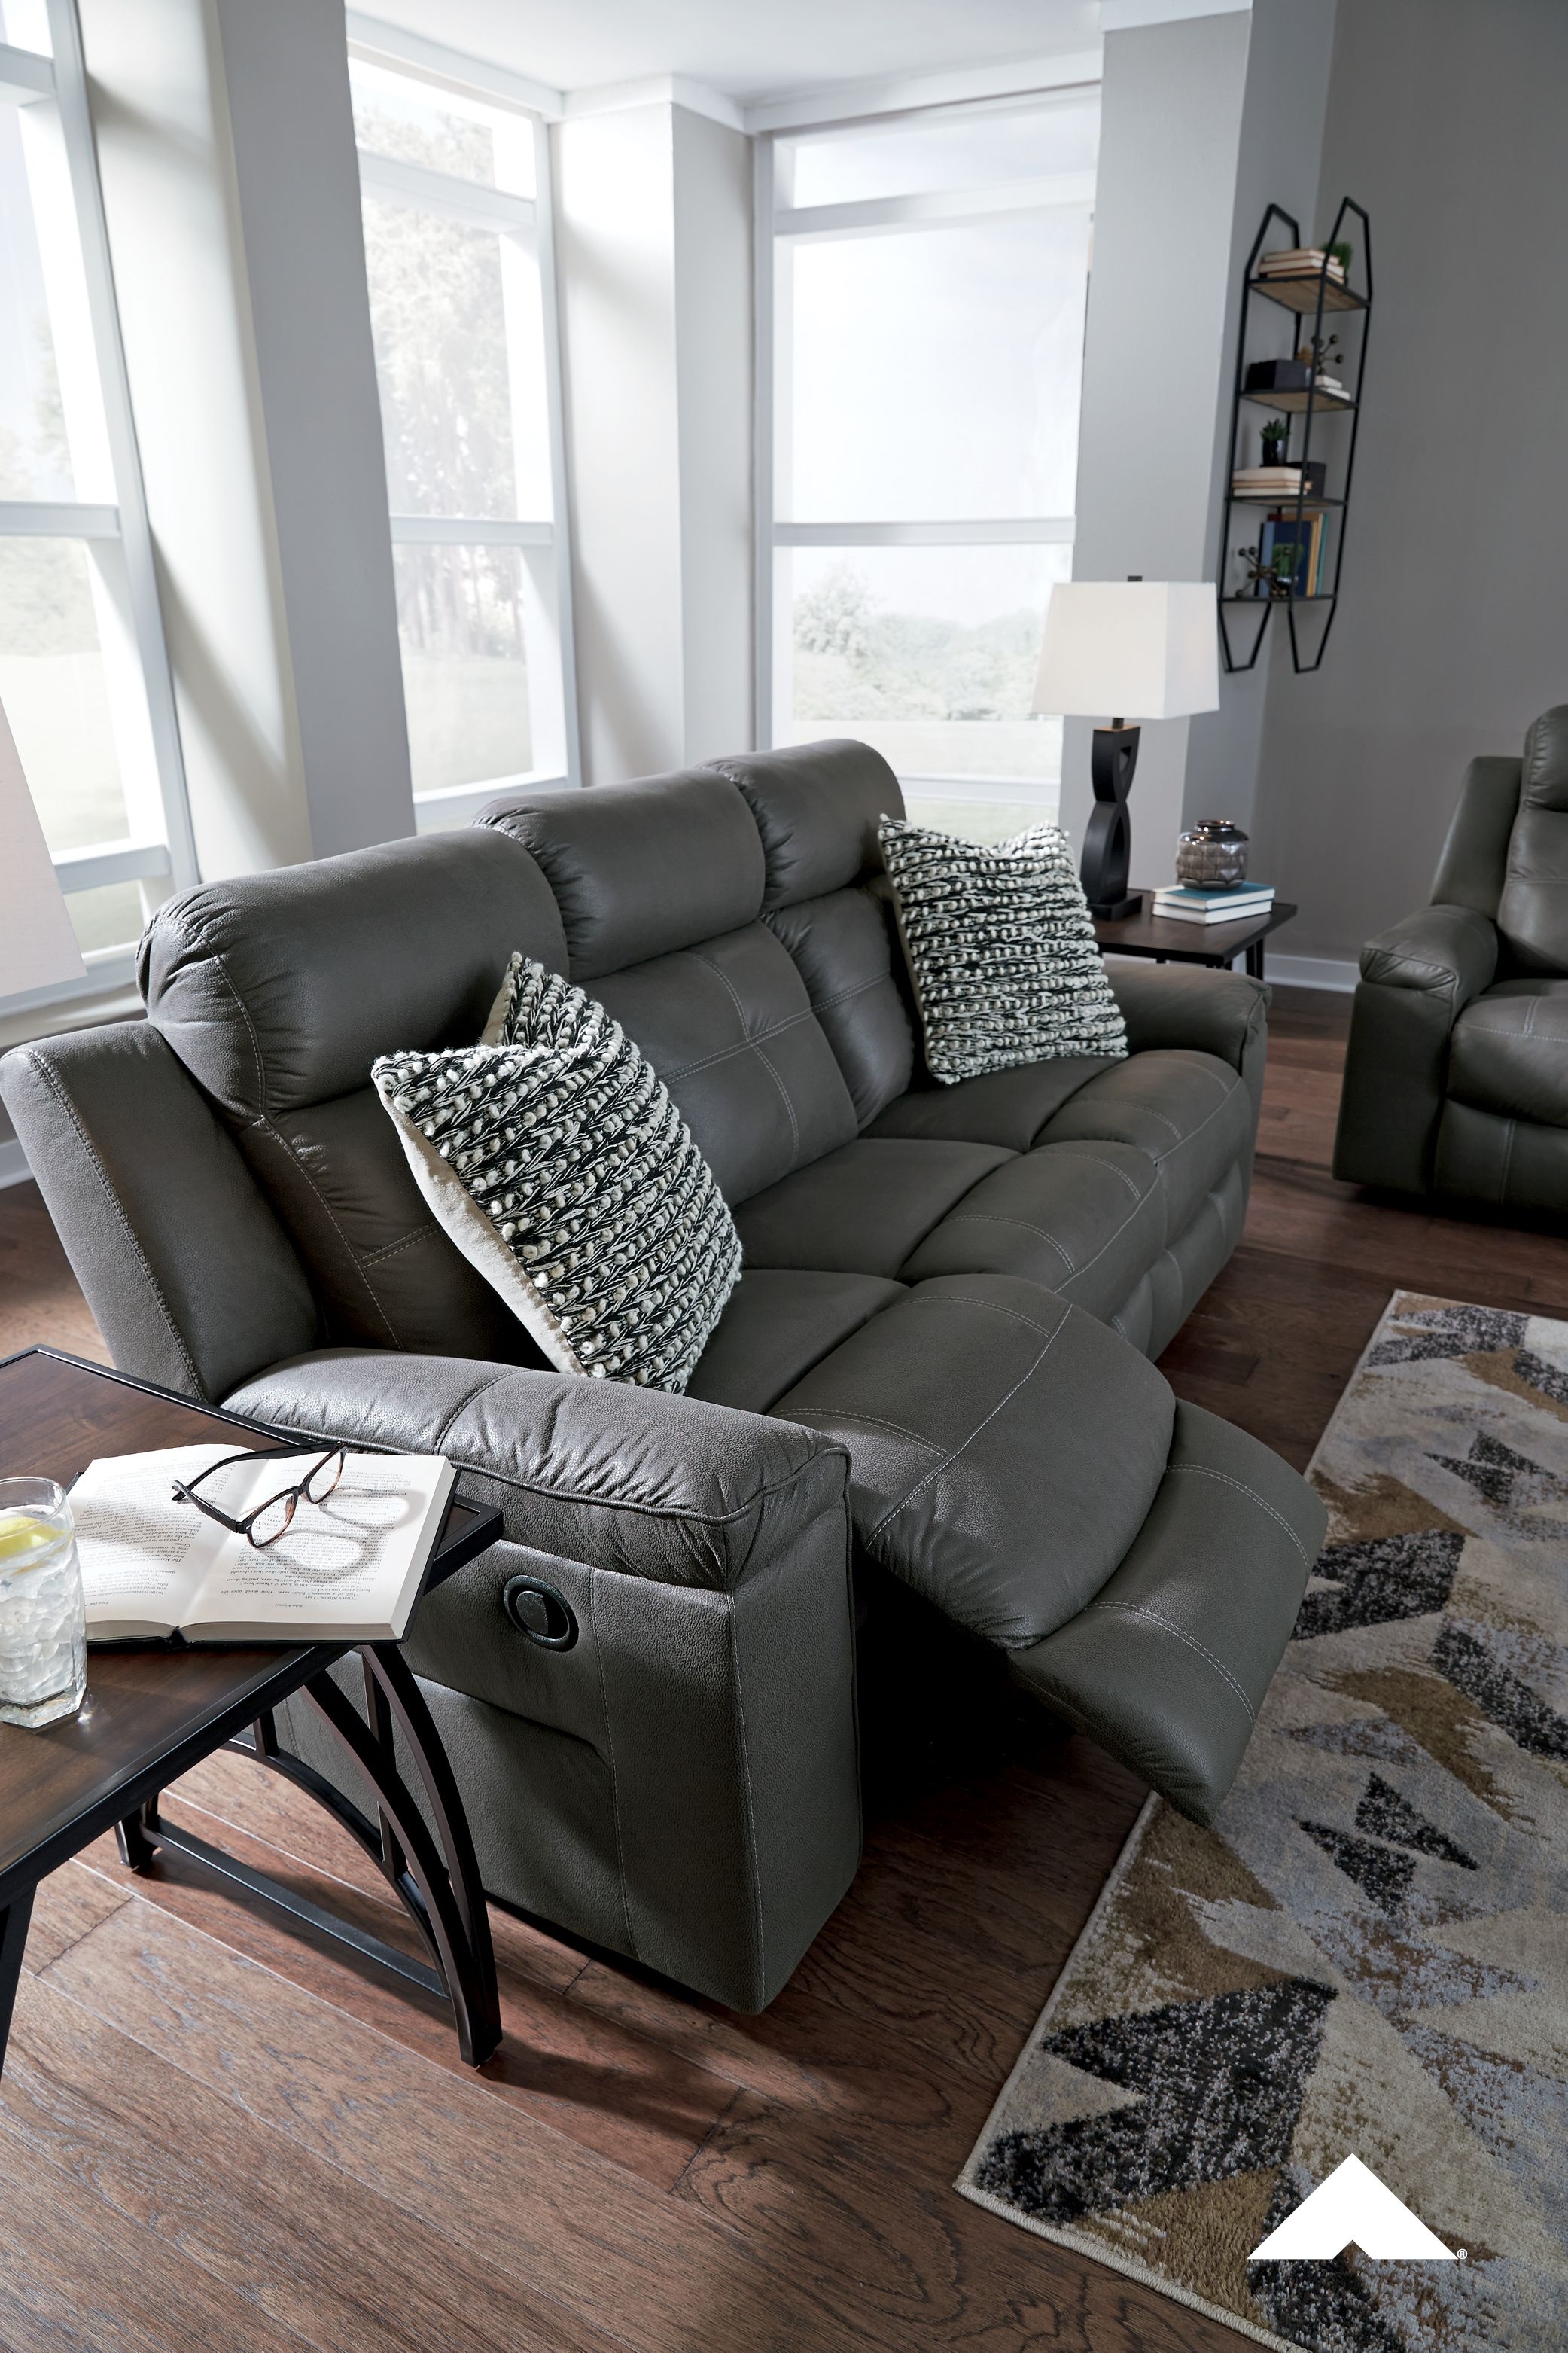 Jesolo Dark Gray Reclining Sofa Rustic Character Comes Forth In This Dark Gray Reclining Sofa Designer Stit Living Room Grey Reclining Sofa Ashley Furniture